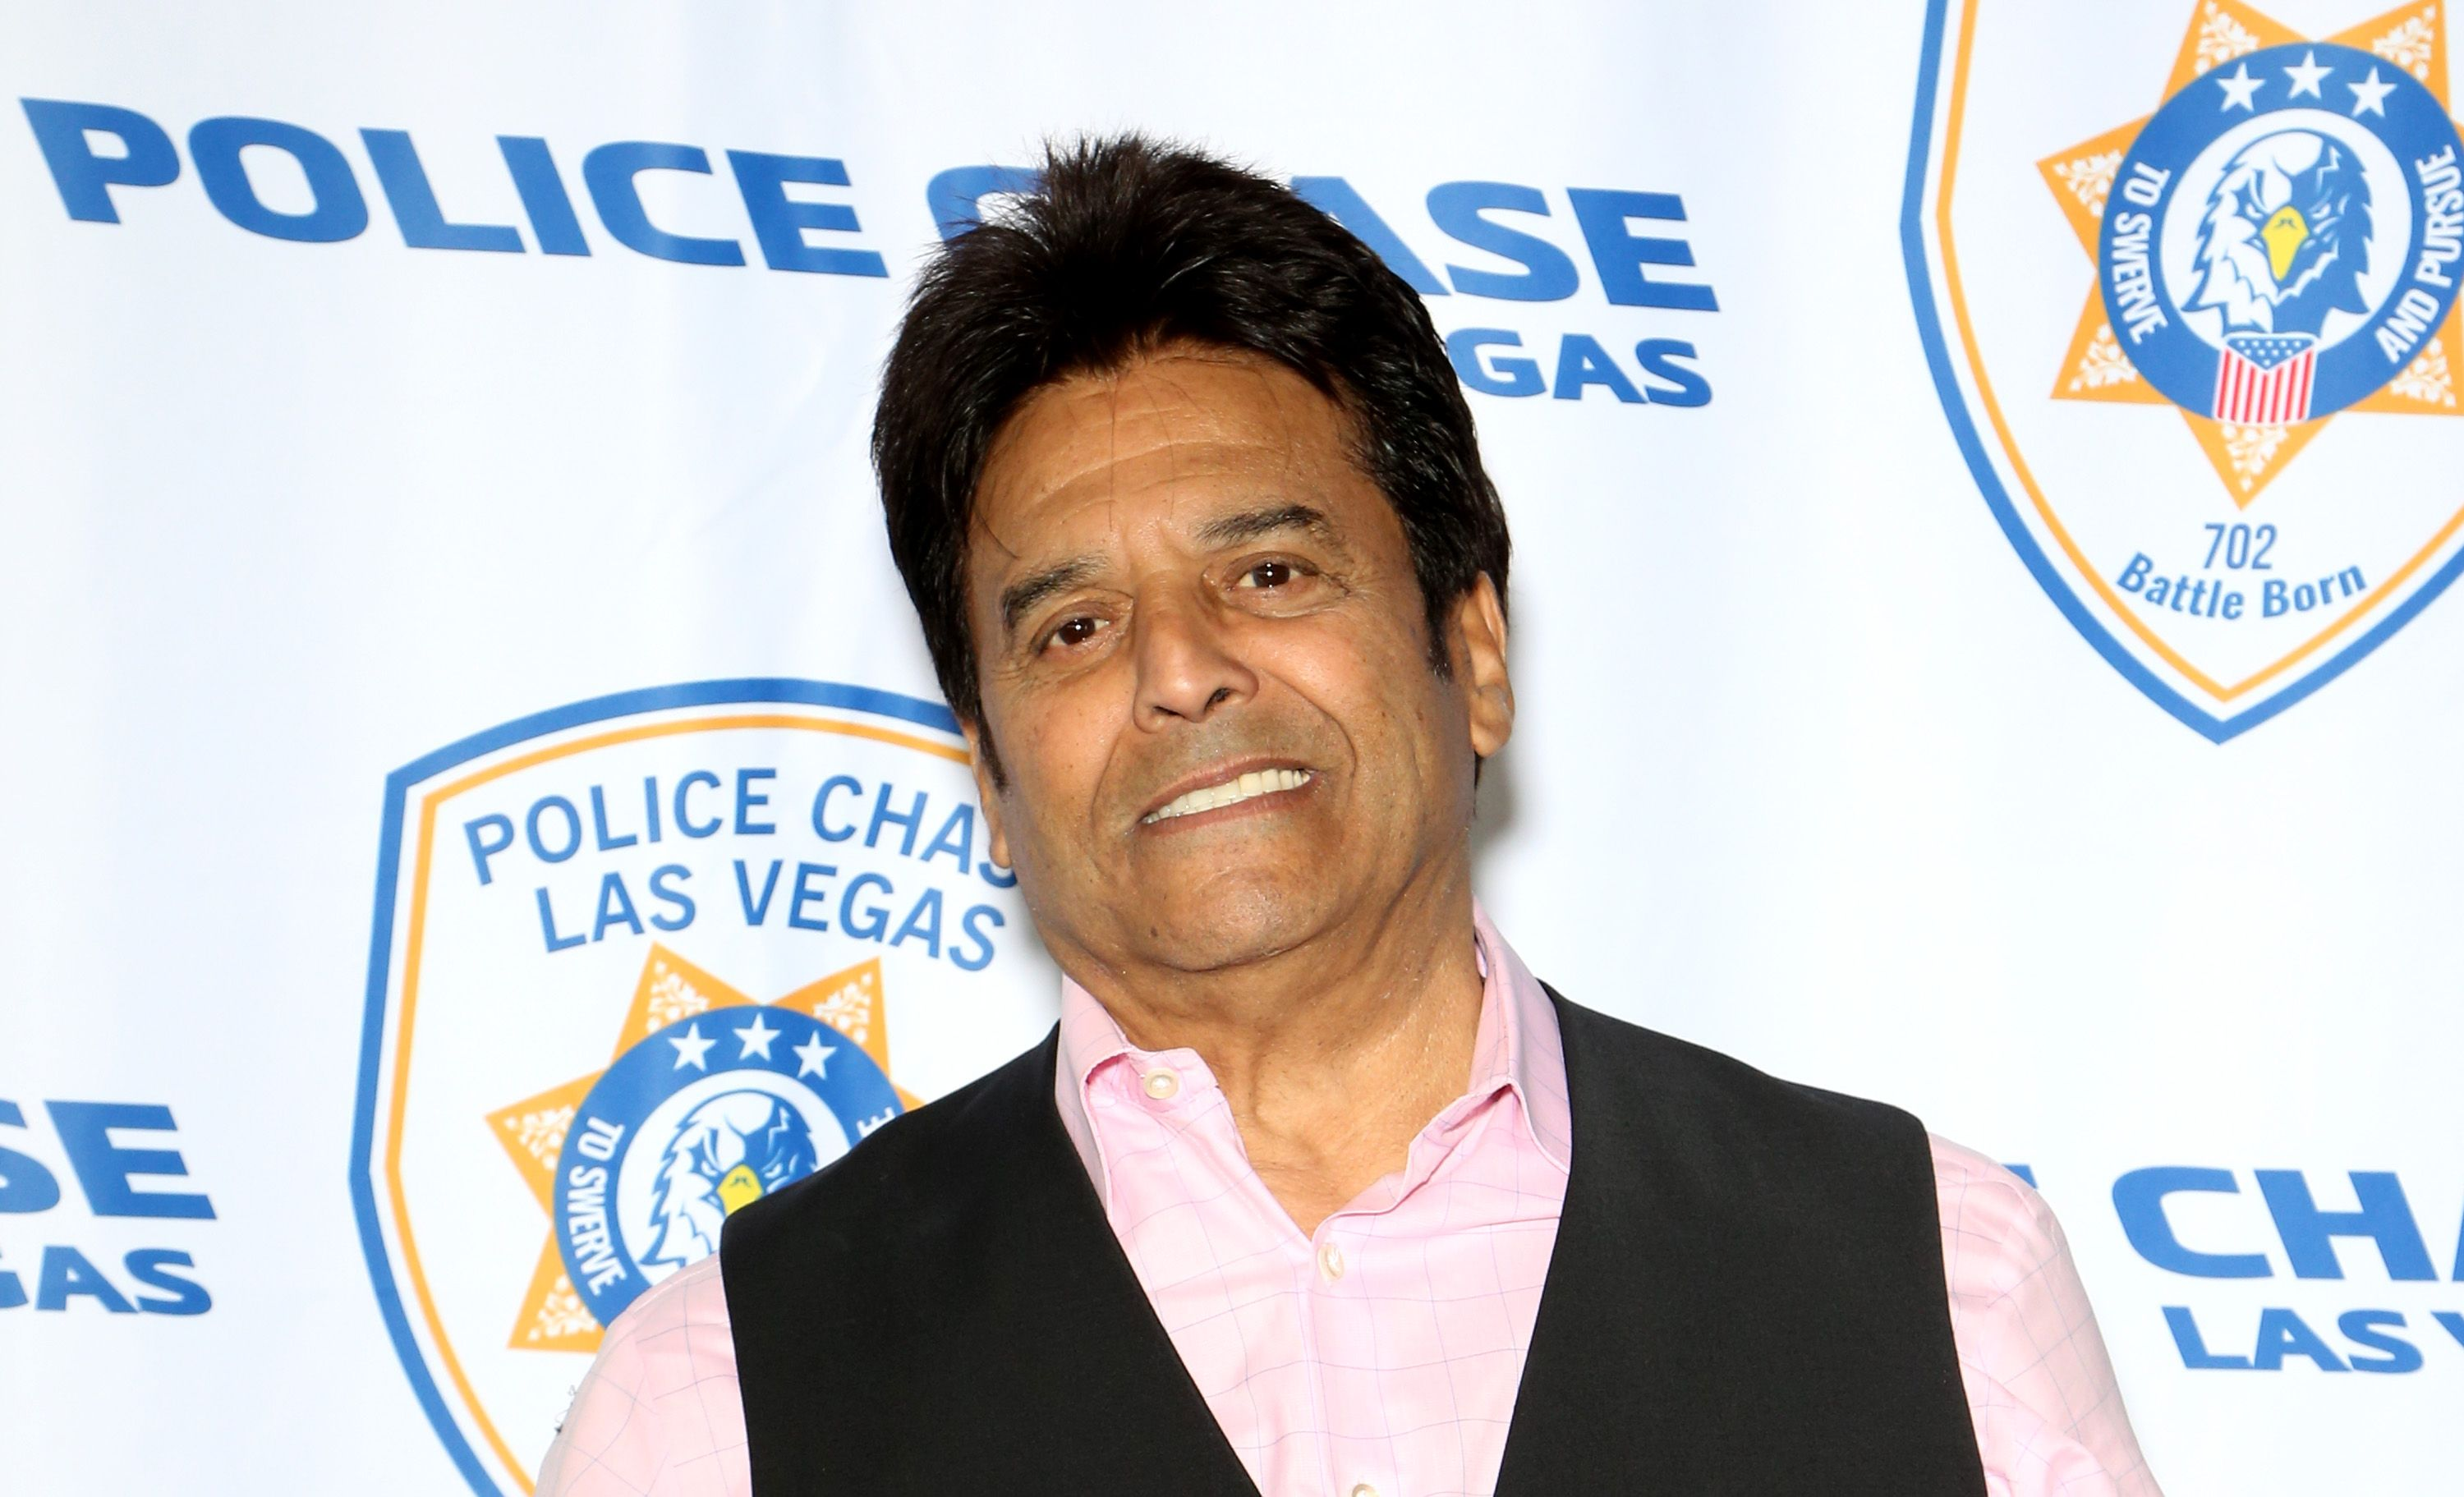 Actor Erik Estrada at the grand opening of Police Chase Las Vegas on January 19, 2019 | Photo: Getty Images